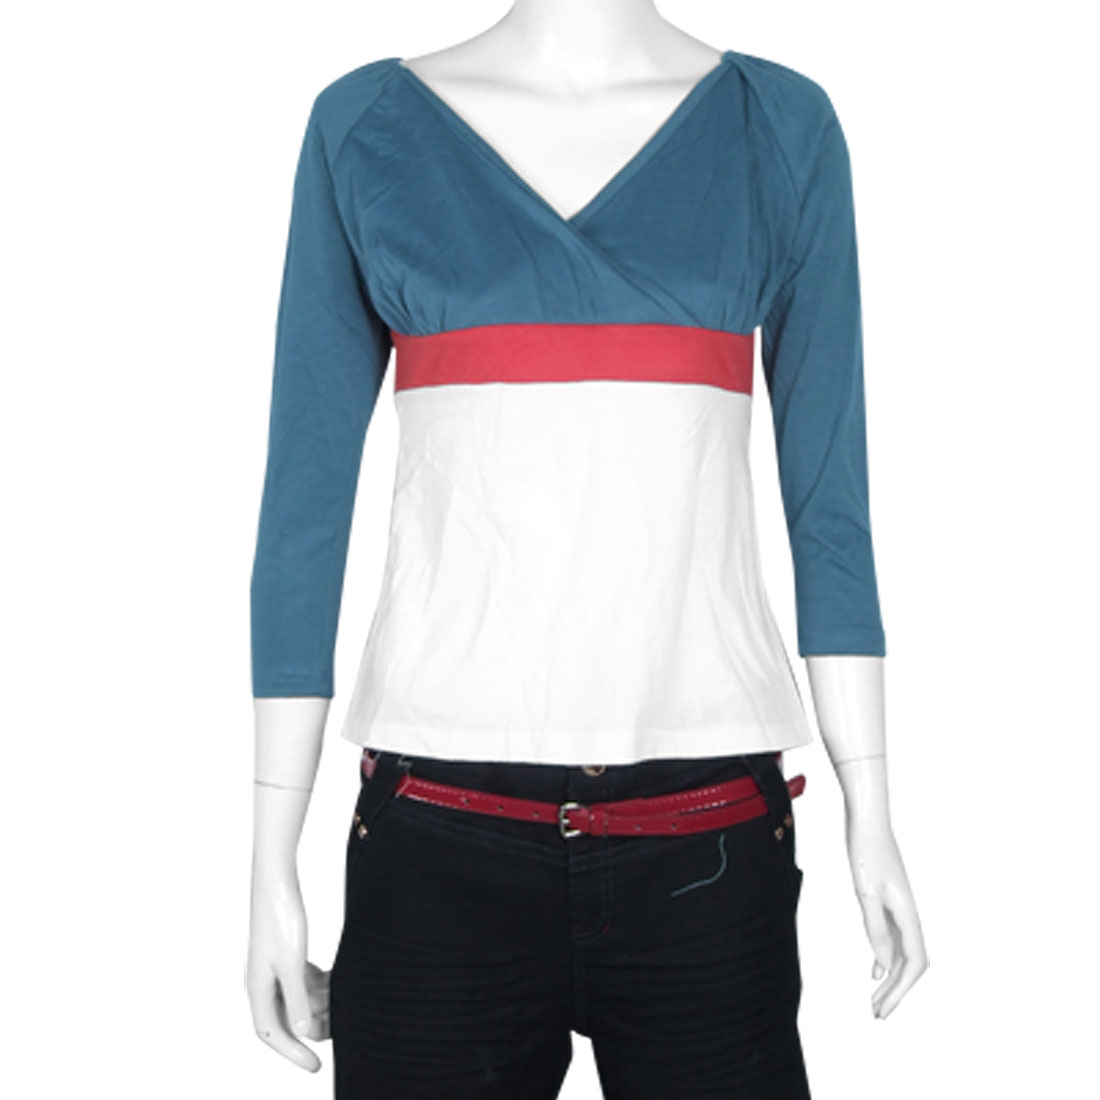 Three-tone Striped Style V Neck Shirt for Ladies XS